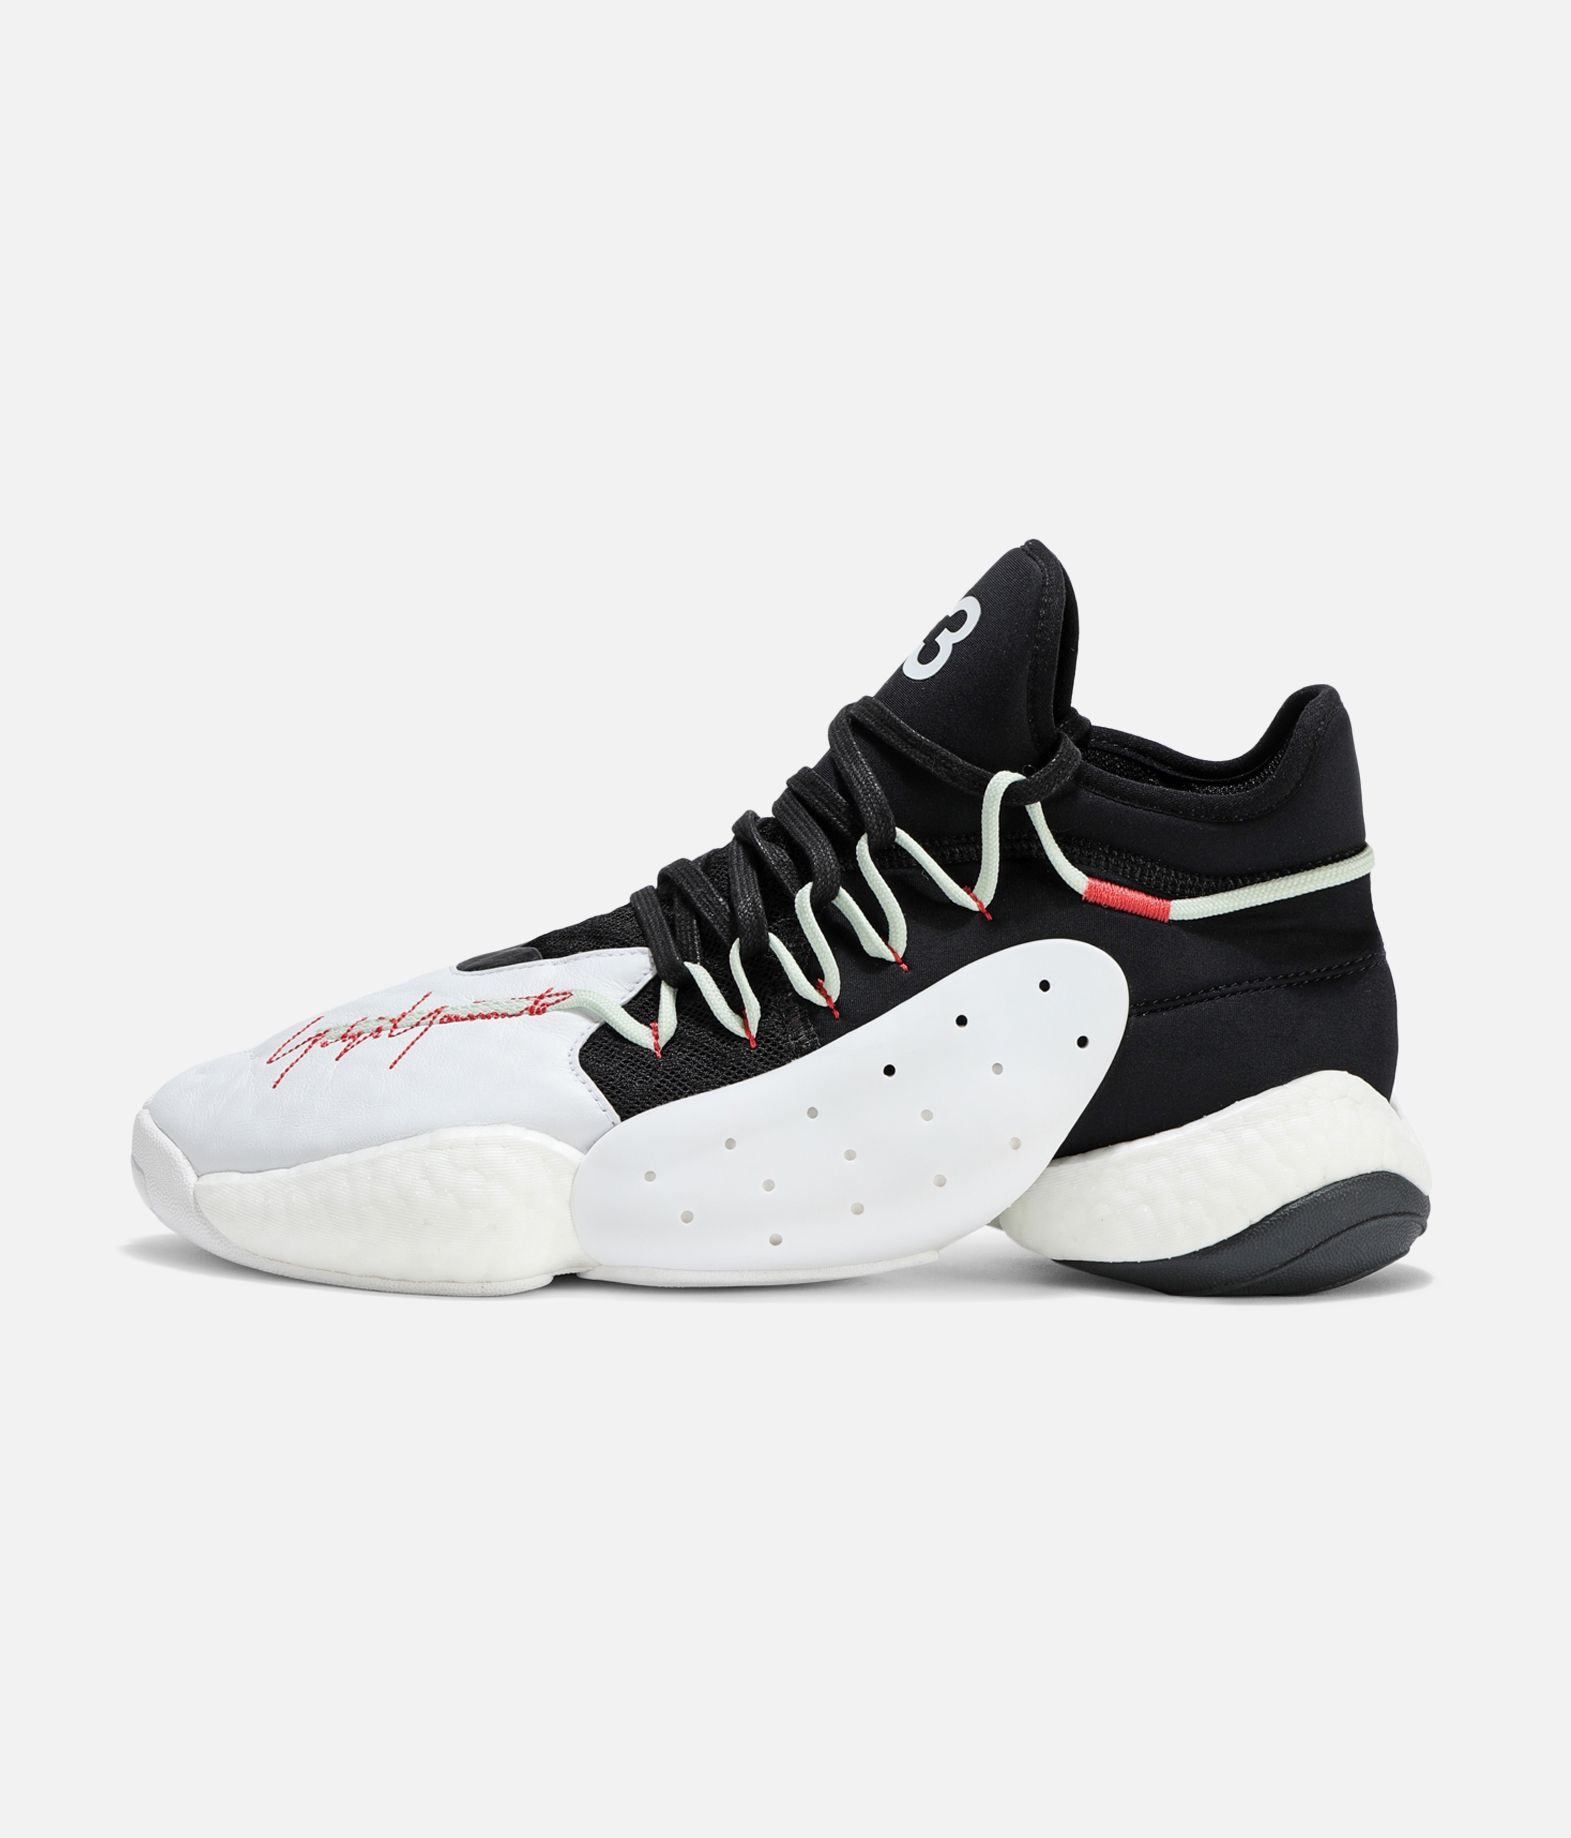 Y-3 Y-3 BYW BBALL Sneakers Uomo f